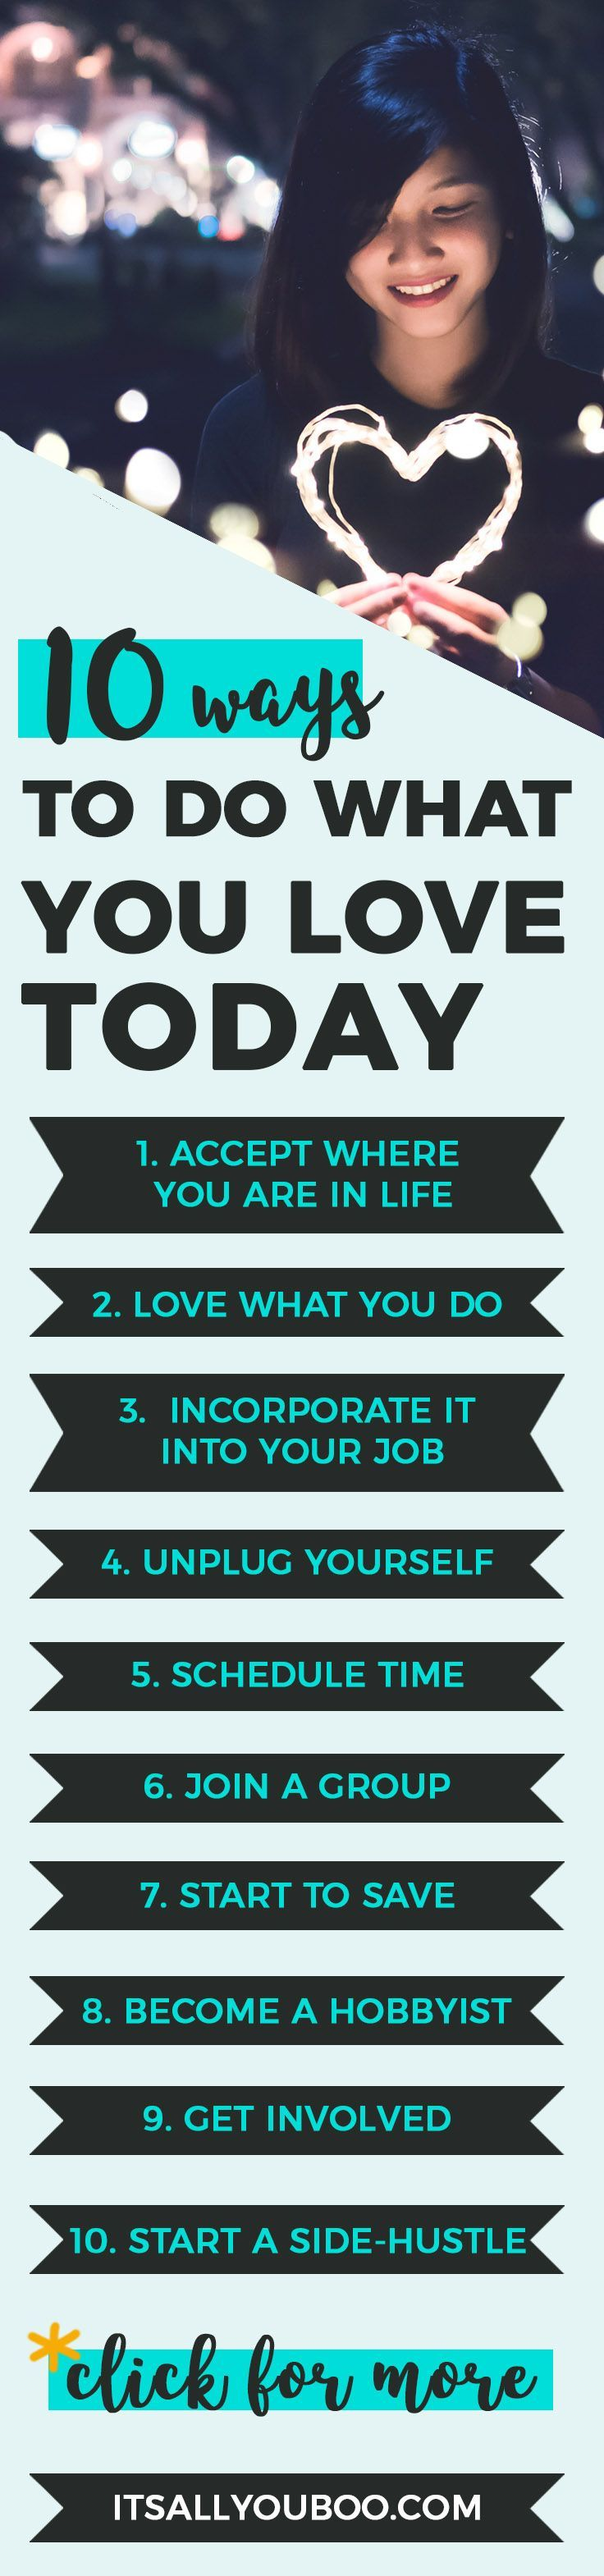 10 Ways To Do What You Love